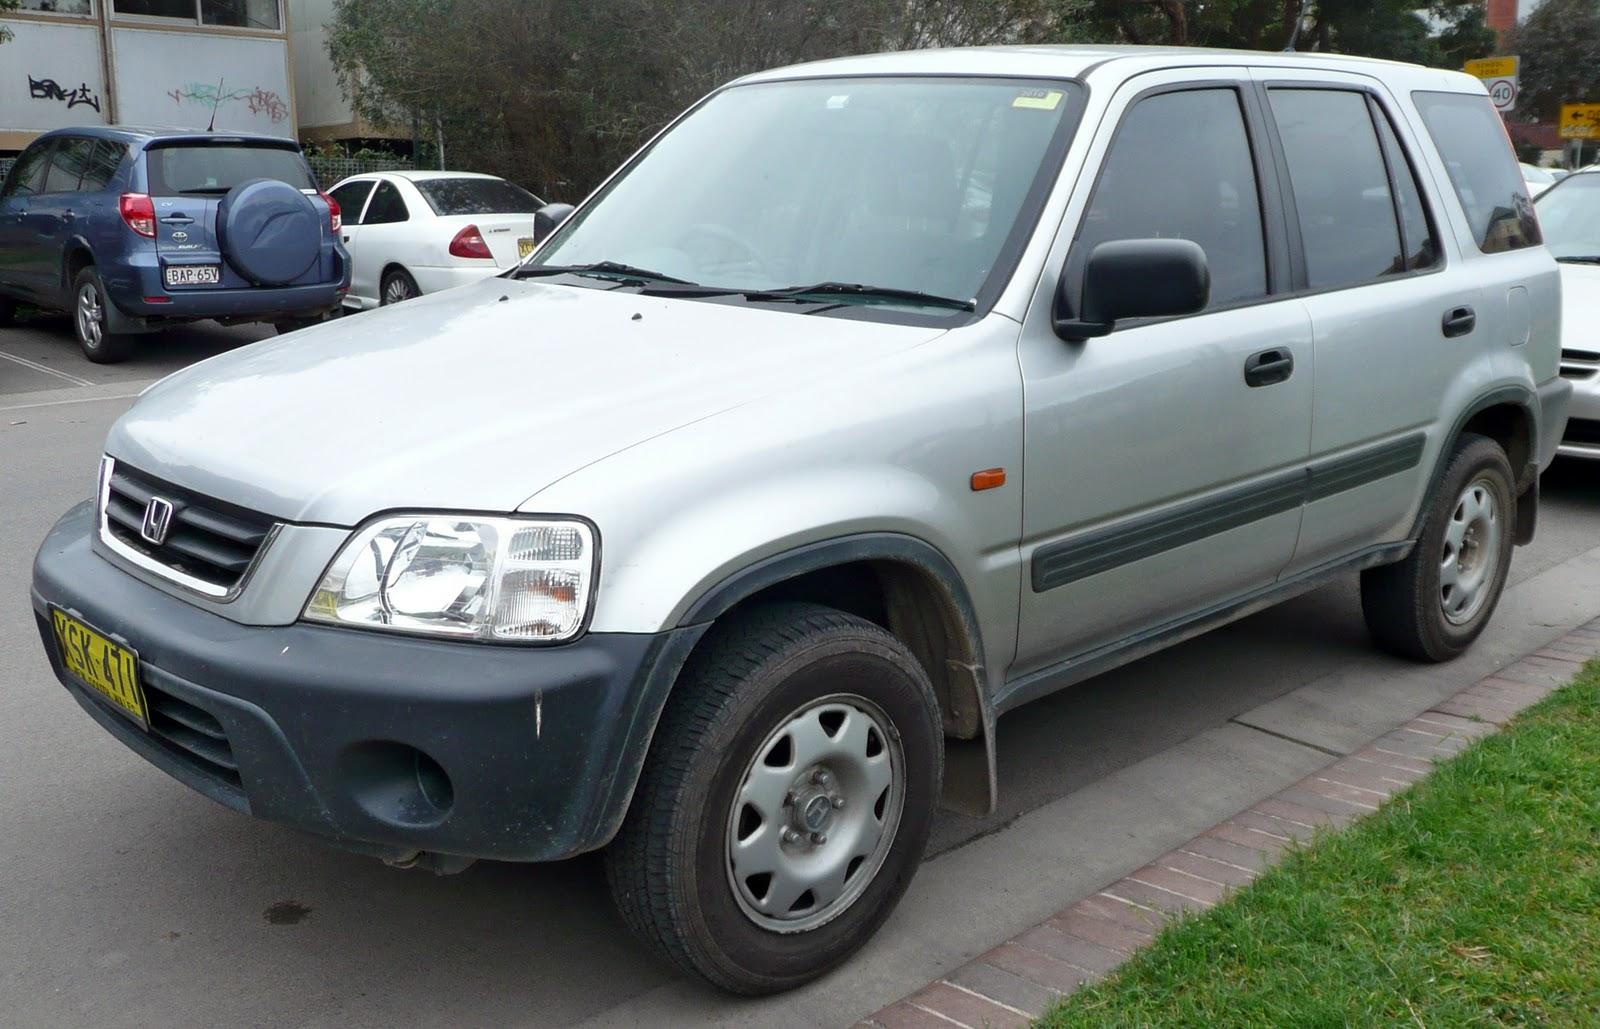 Honda CR-V 1995 photo - 3